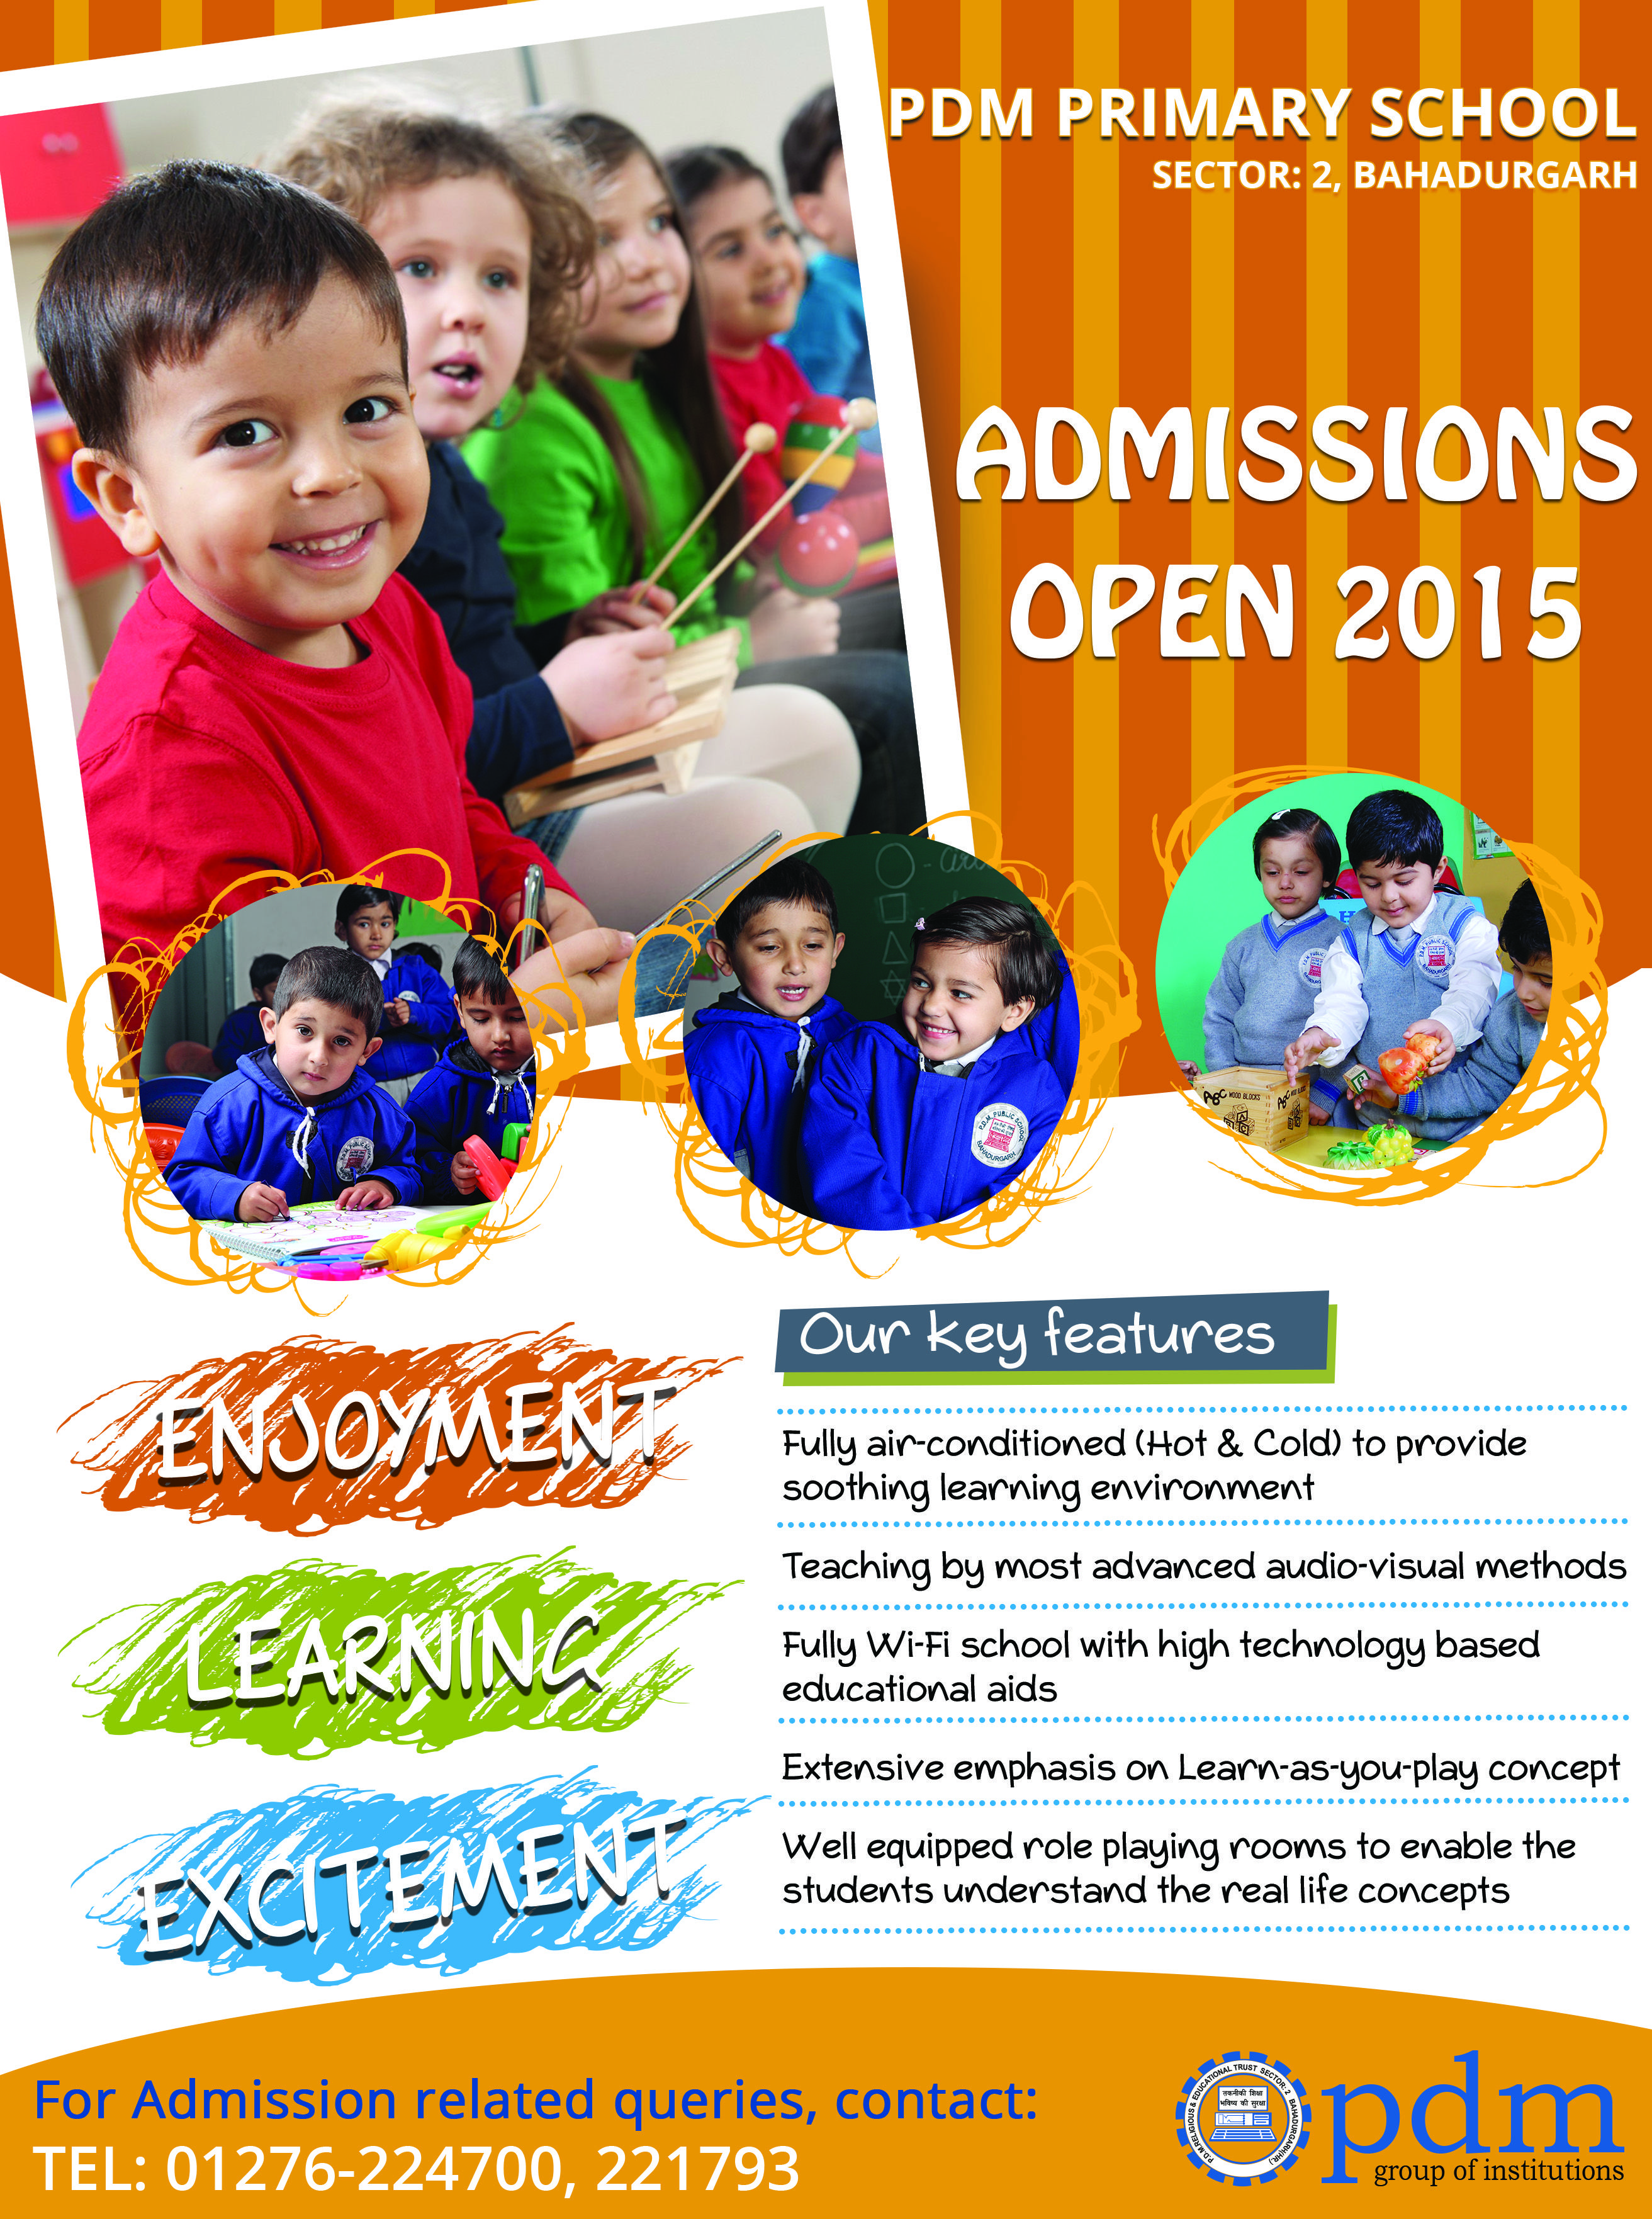 pdm primary school flyers 2015 print design projects pdm primary school flyers 2015